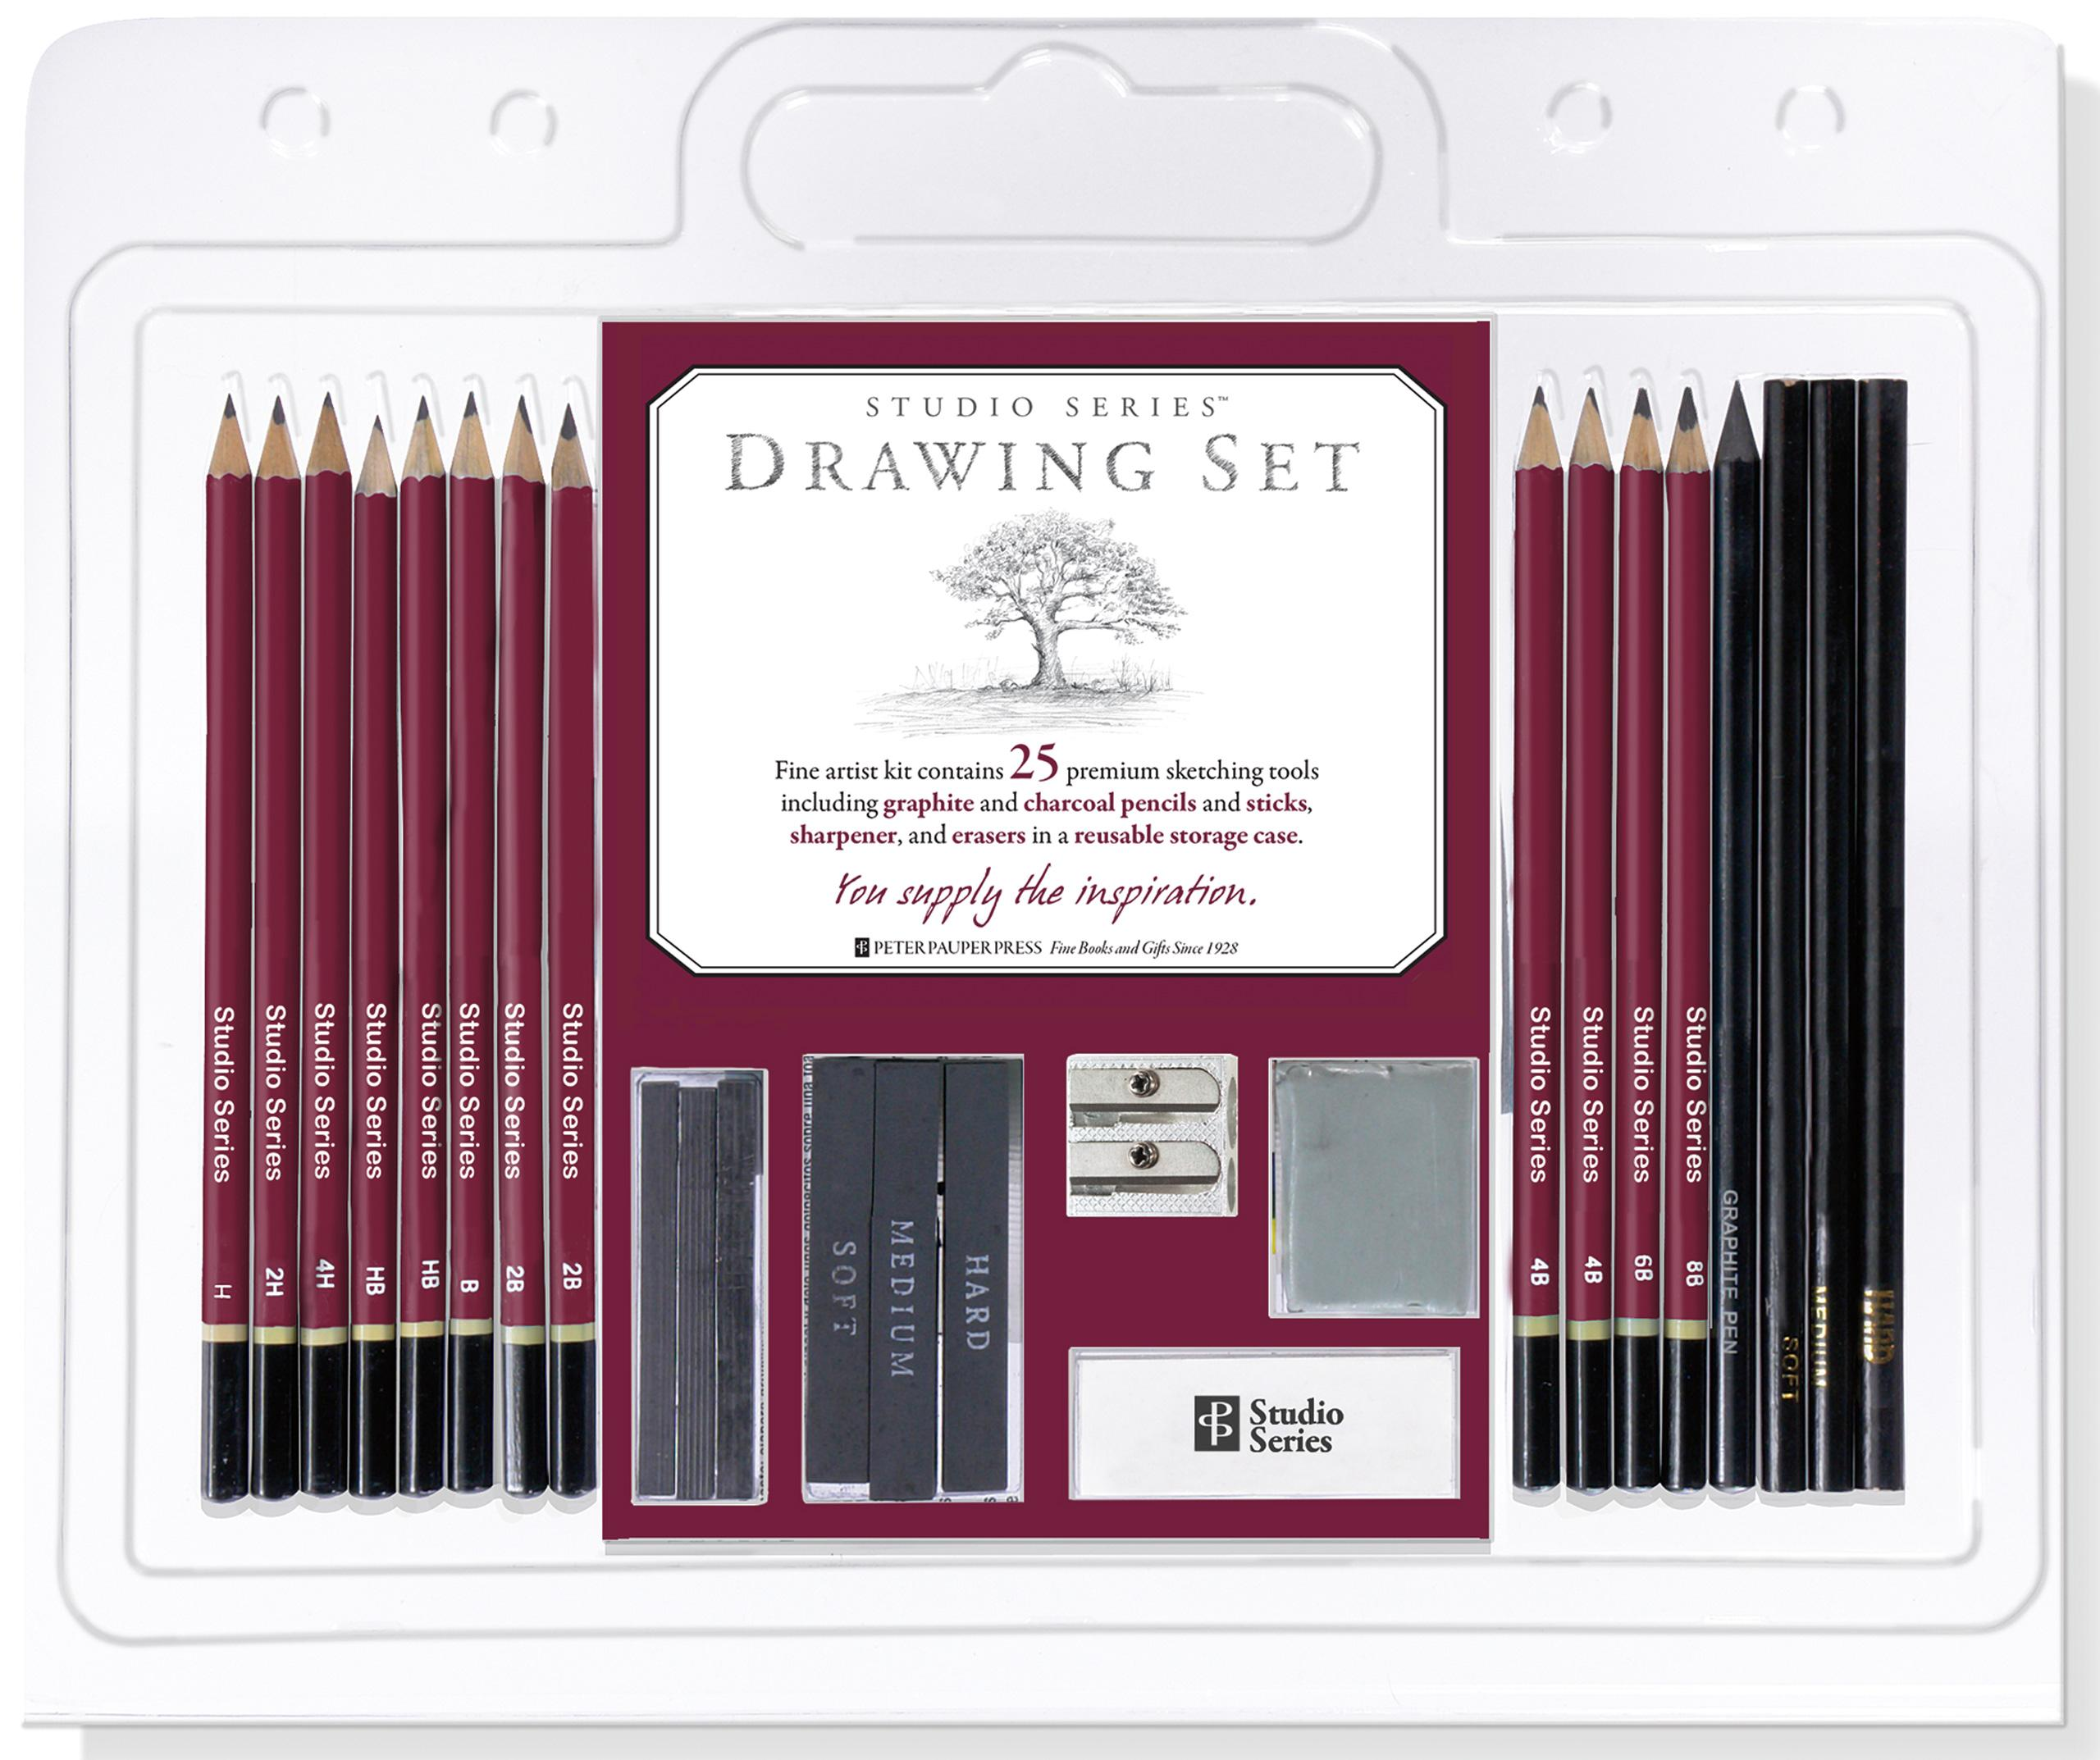 Charcoal Pencil Drawing Sketching Sketch Set Kit Artist Art Tools Graphite Case